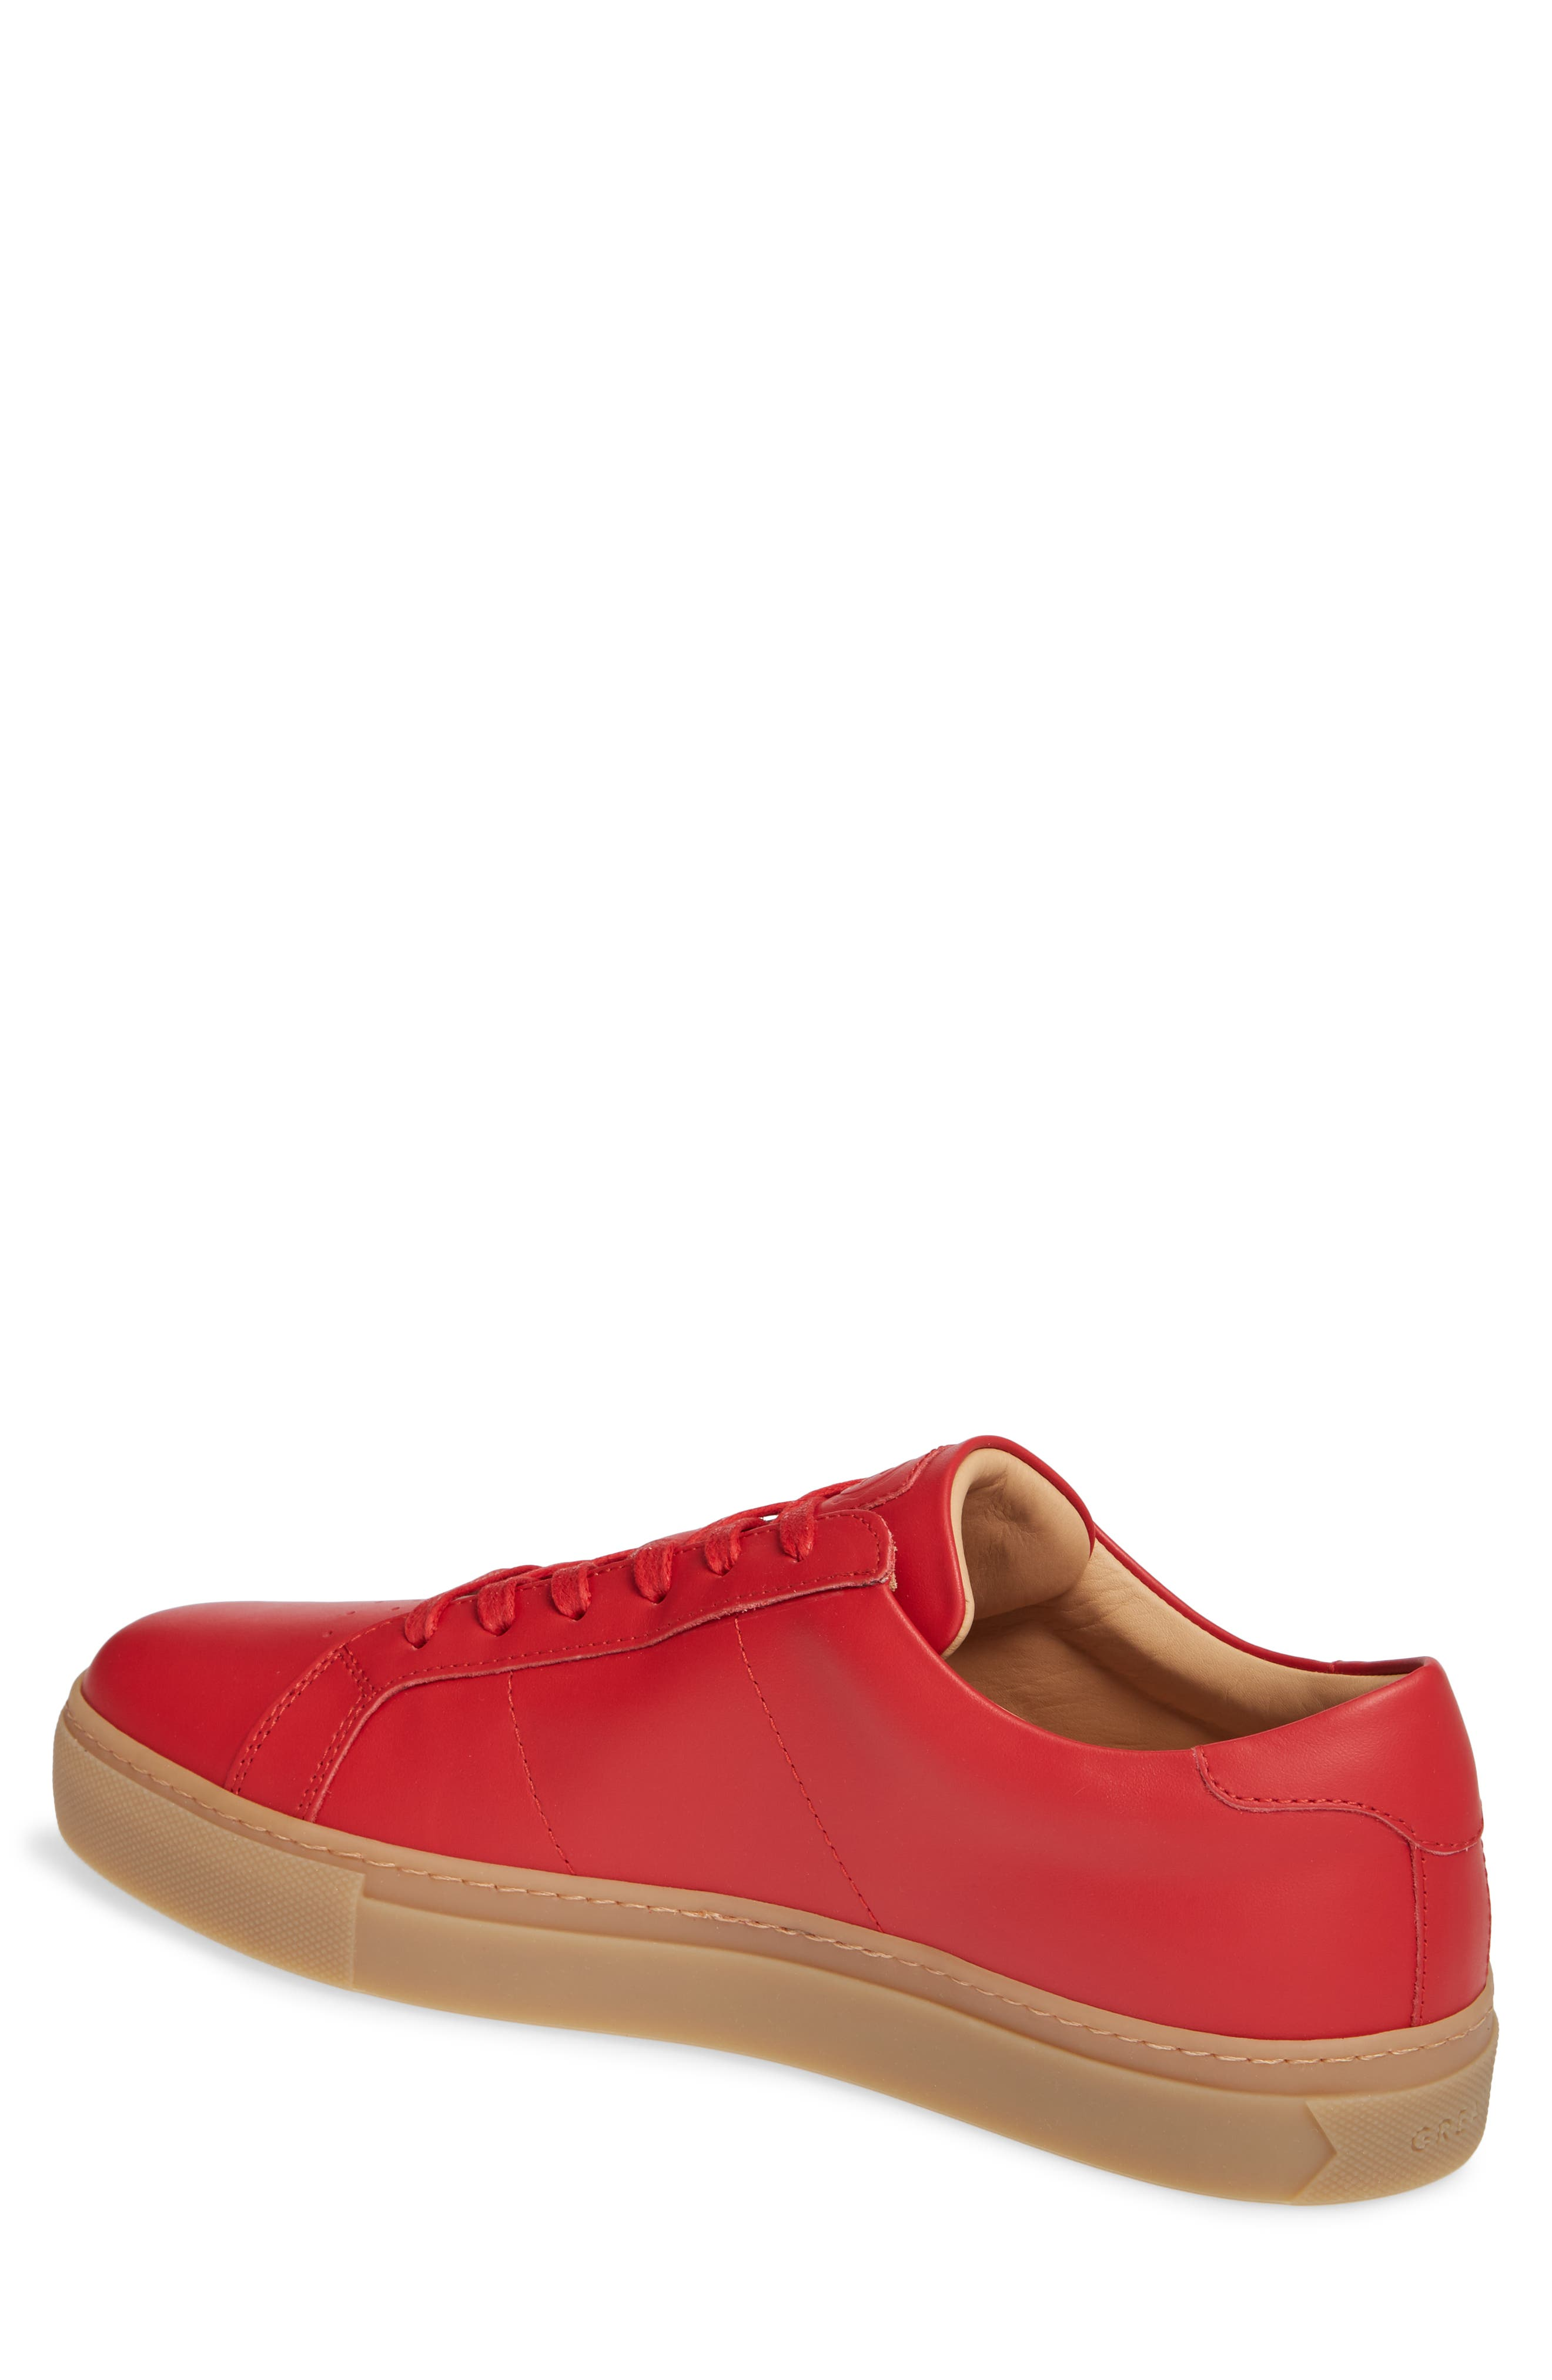 Royale Sneaker,                             Alternate thumbnail 2, color,                             RED/ GUM LEATHER